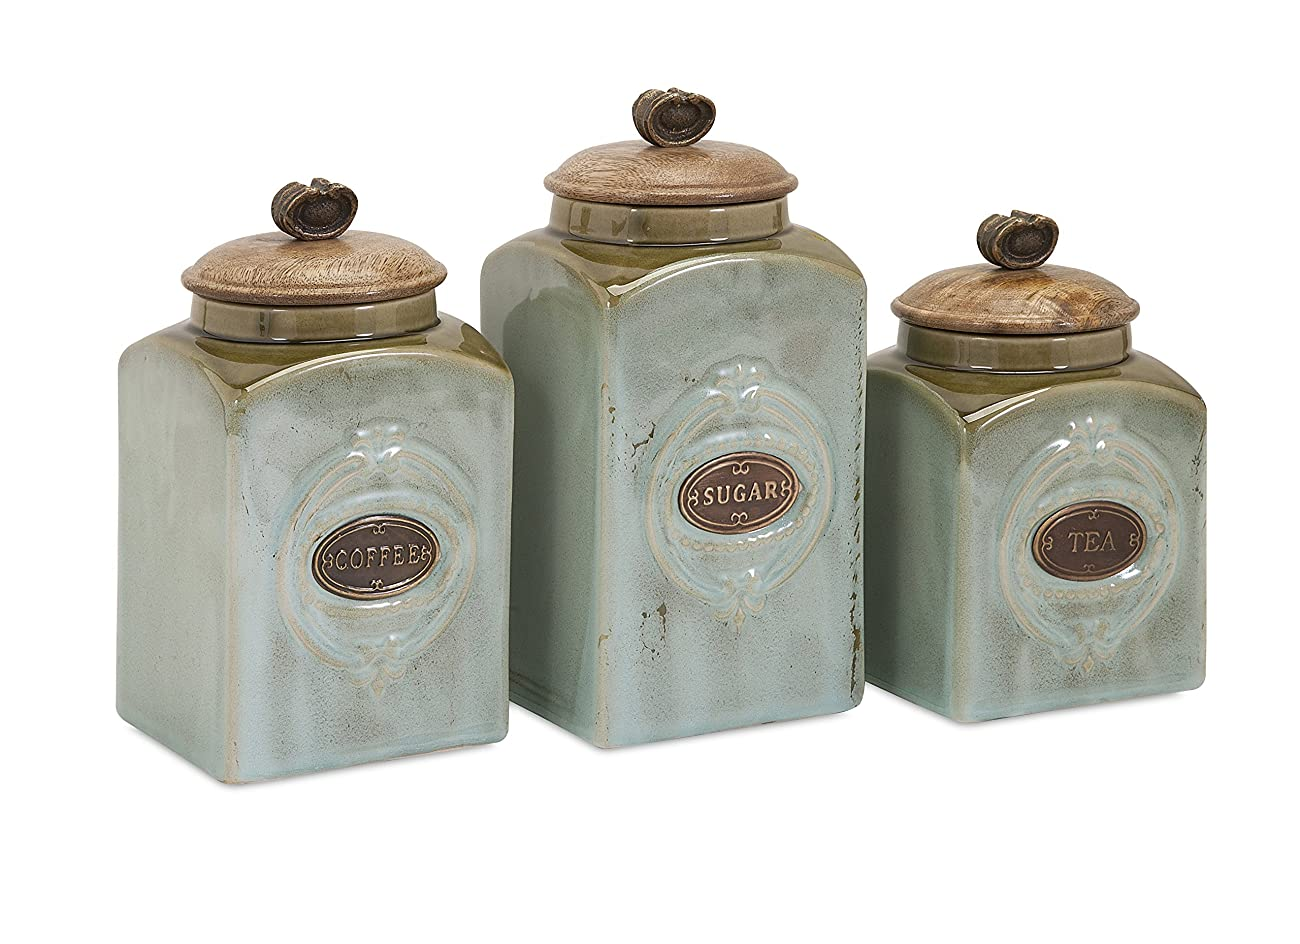 IMAX 73327-3 Addison Ceramic Canisters 0